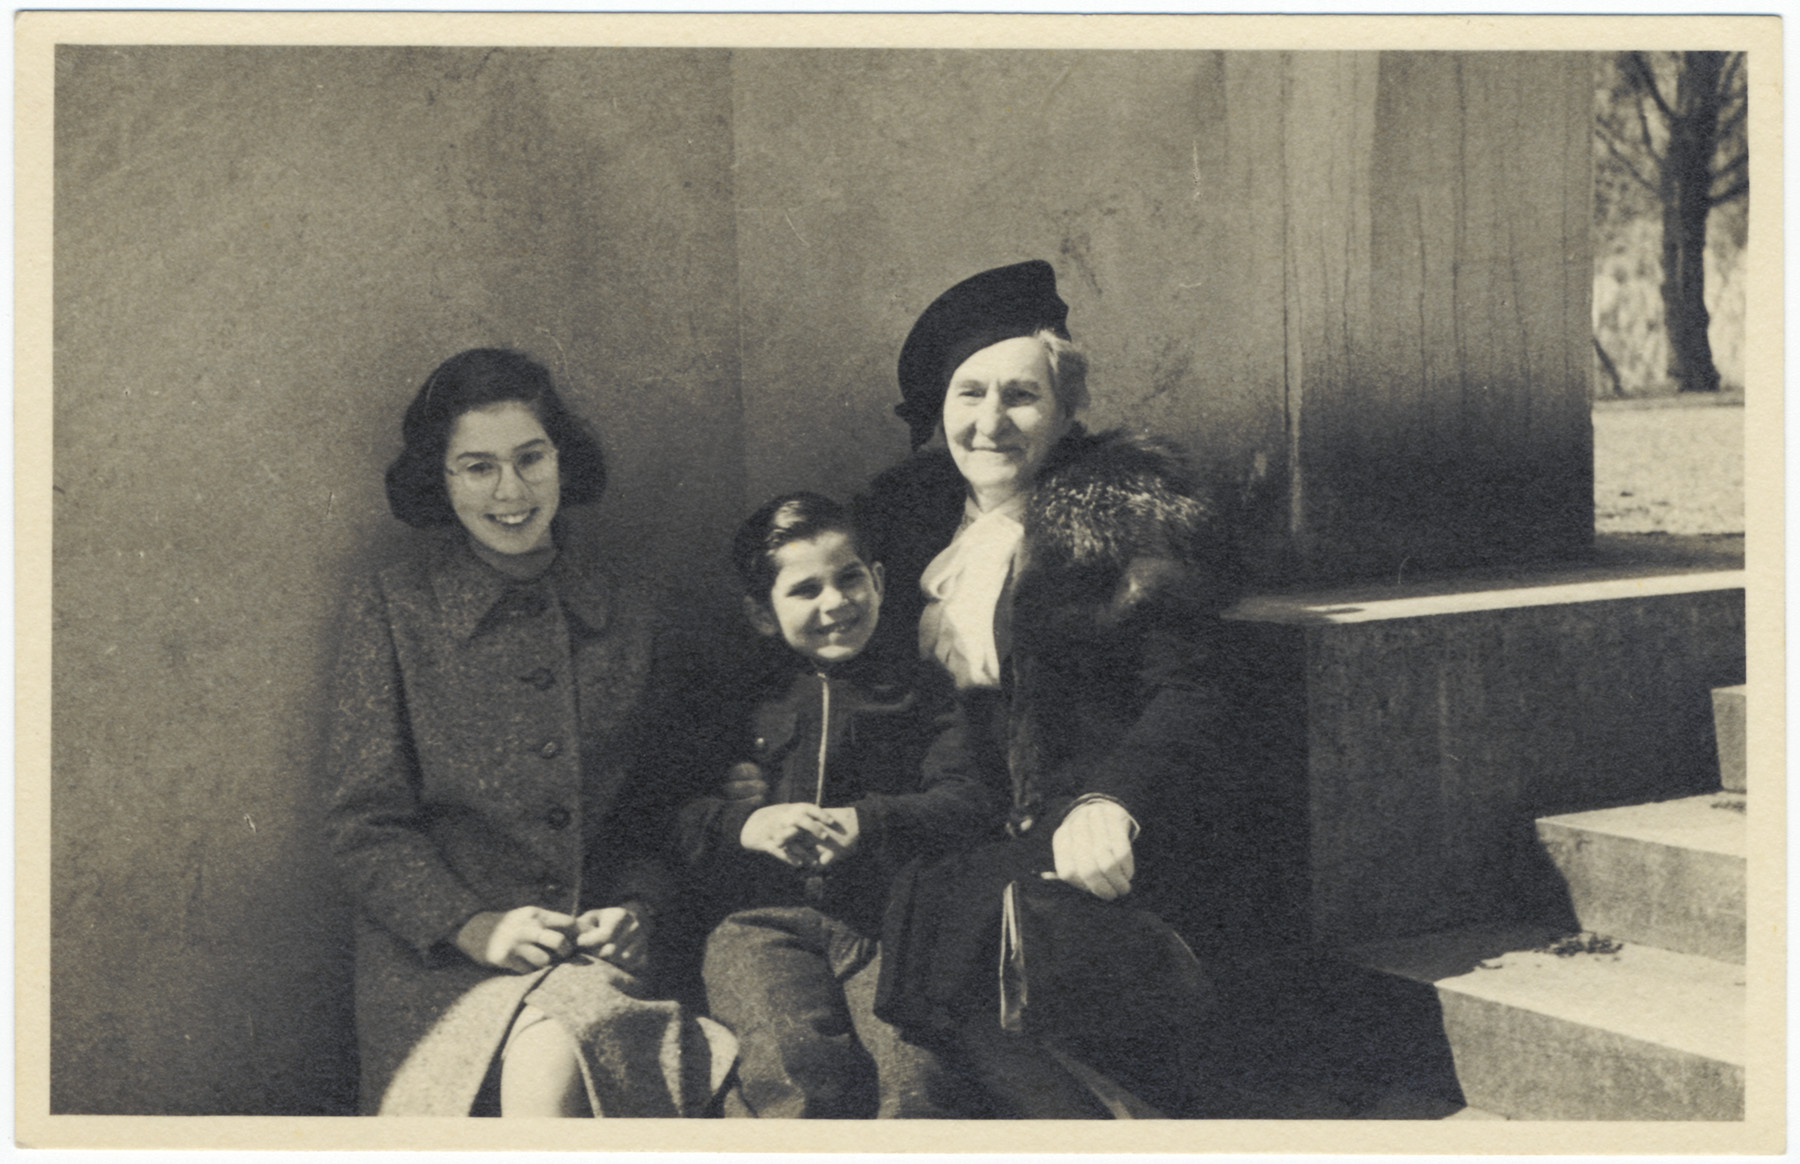 A Jewish grandmother poses with her two grandchildren in Lyons where they were living in semi-hiding under their own names.  Pictured from left to right are Renee, Yetta and Josy Fainas.